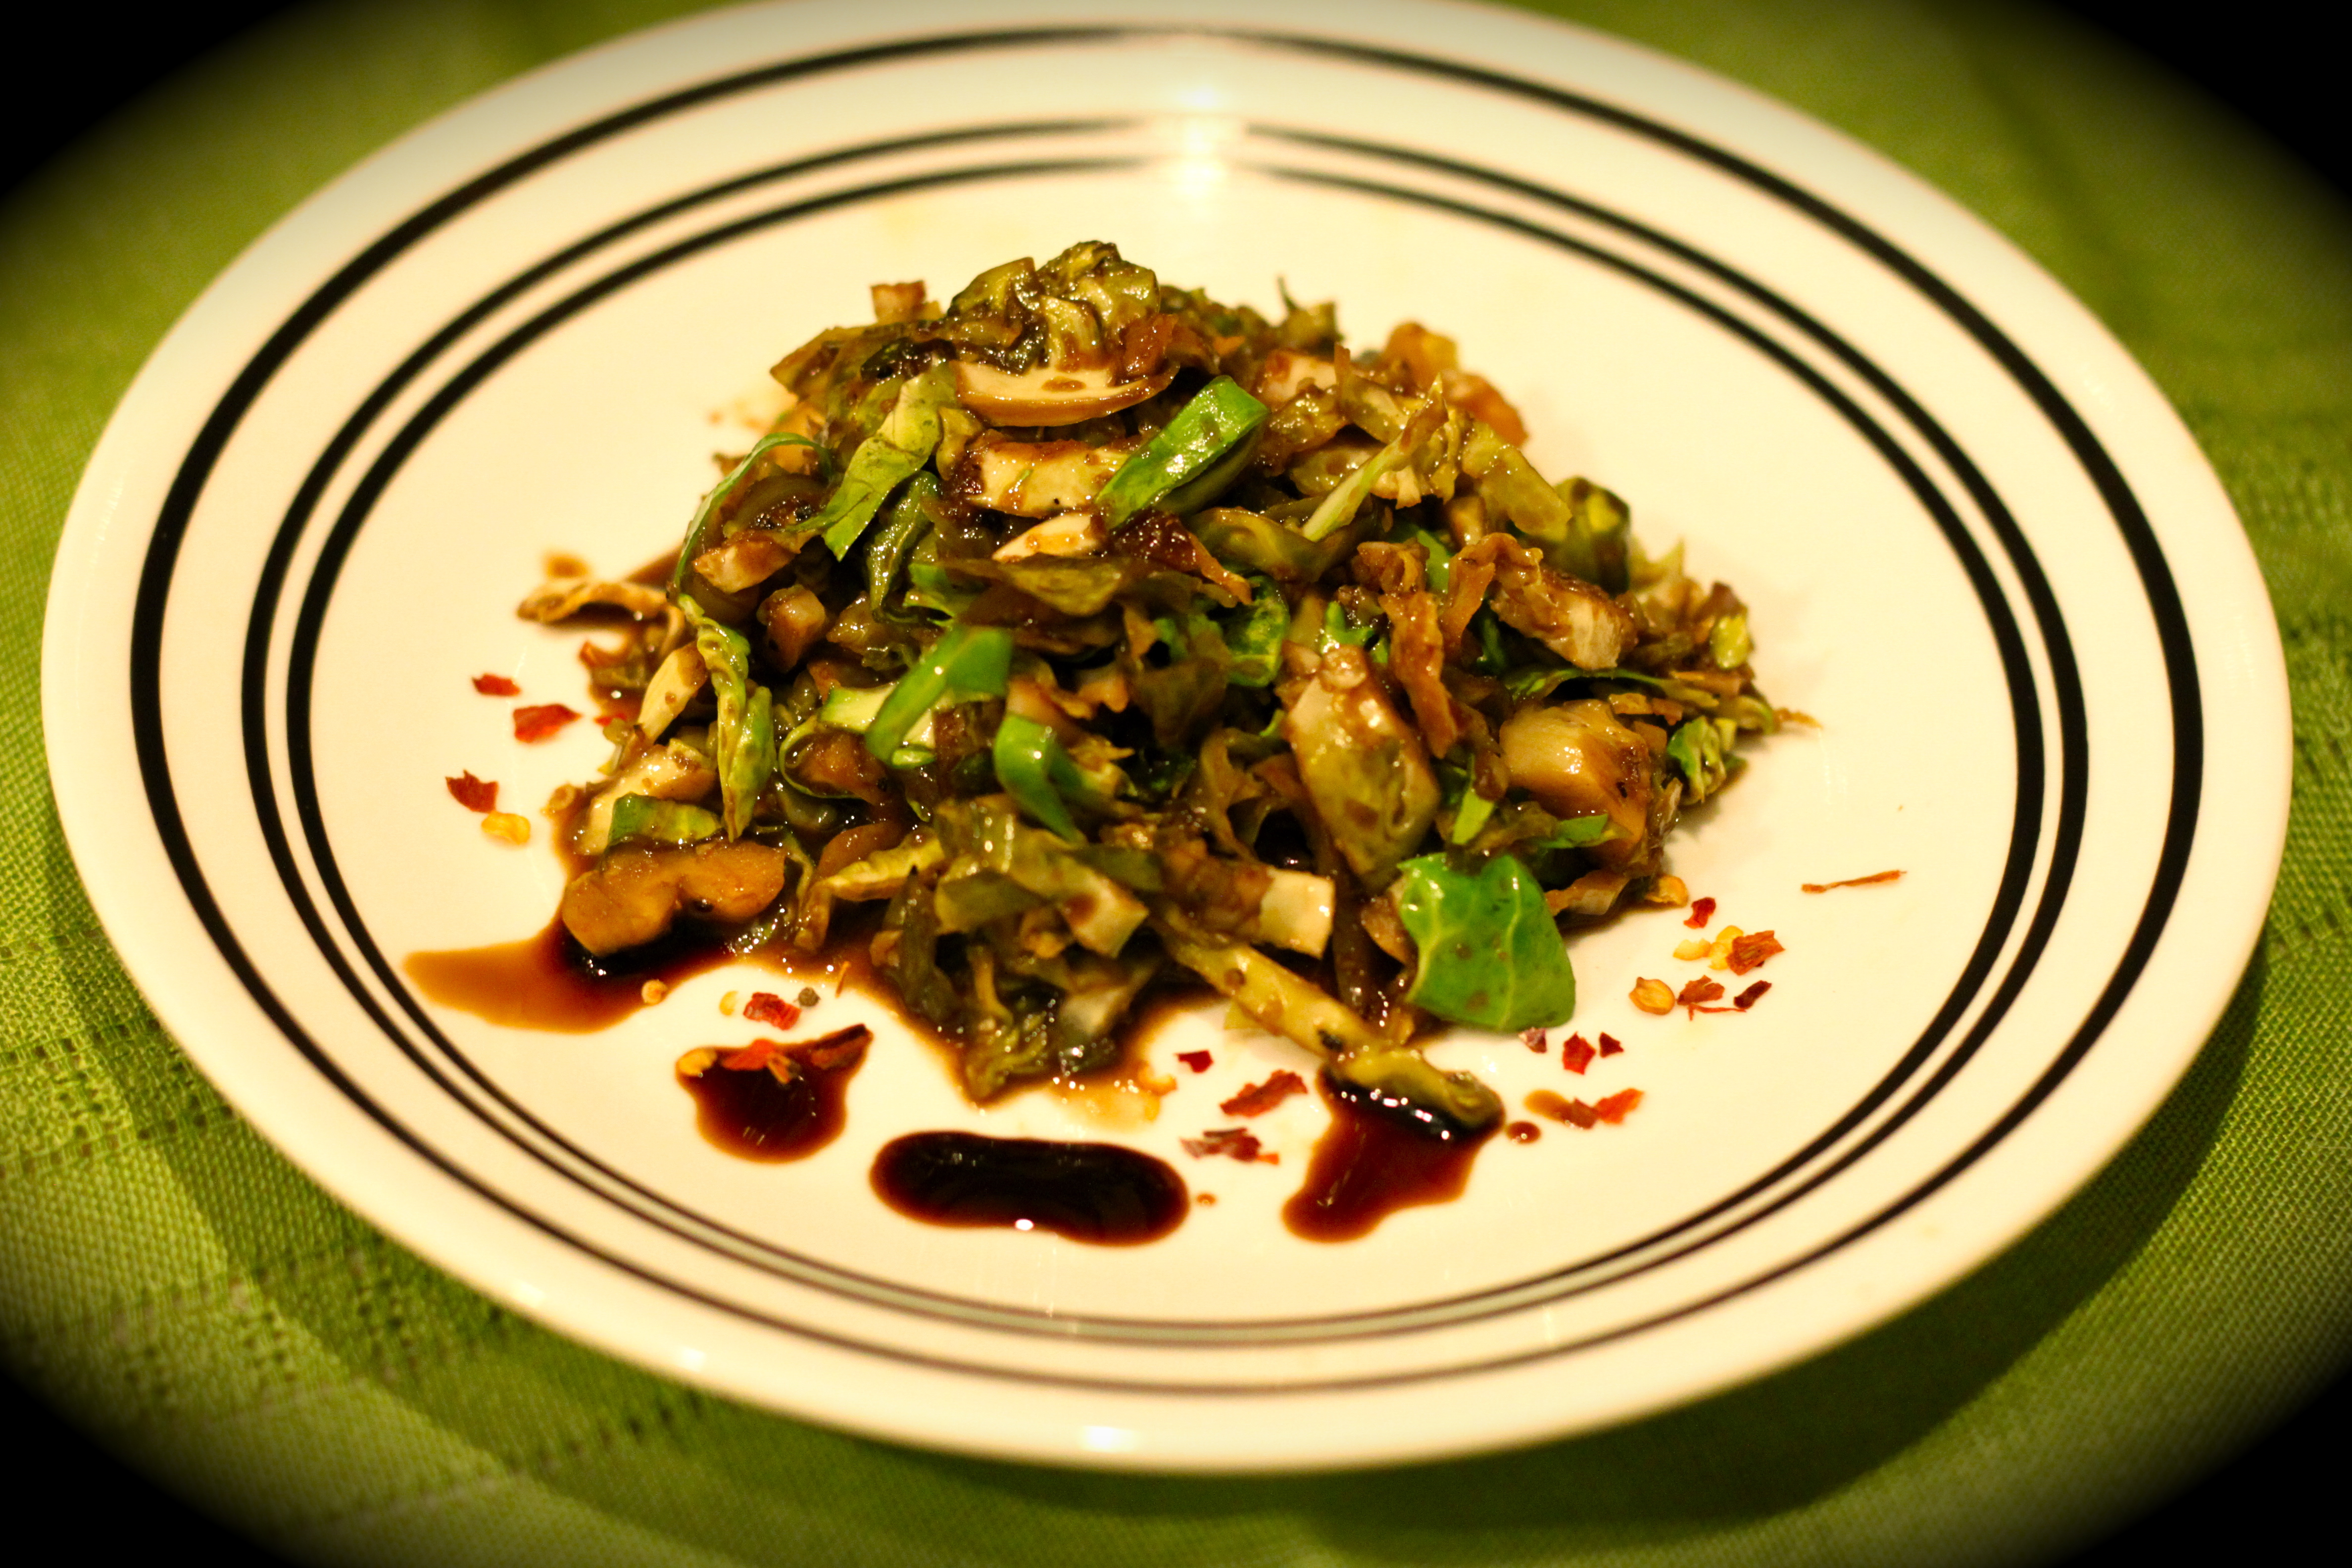 Shredded Brussels Sprouts with Garlic and Balsamic Vinegar |